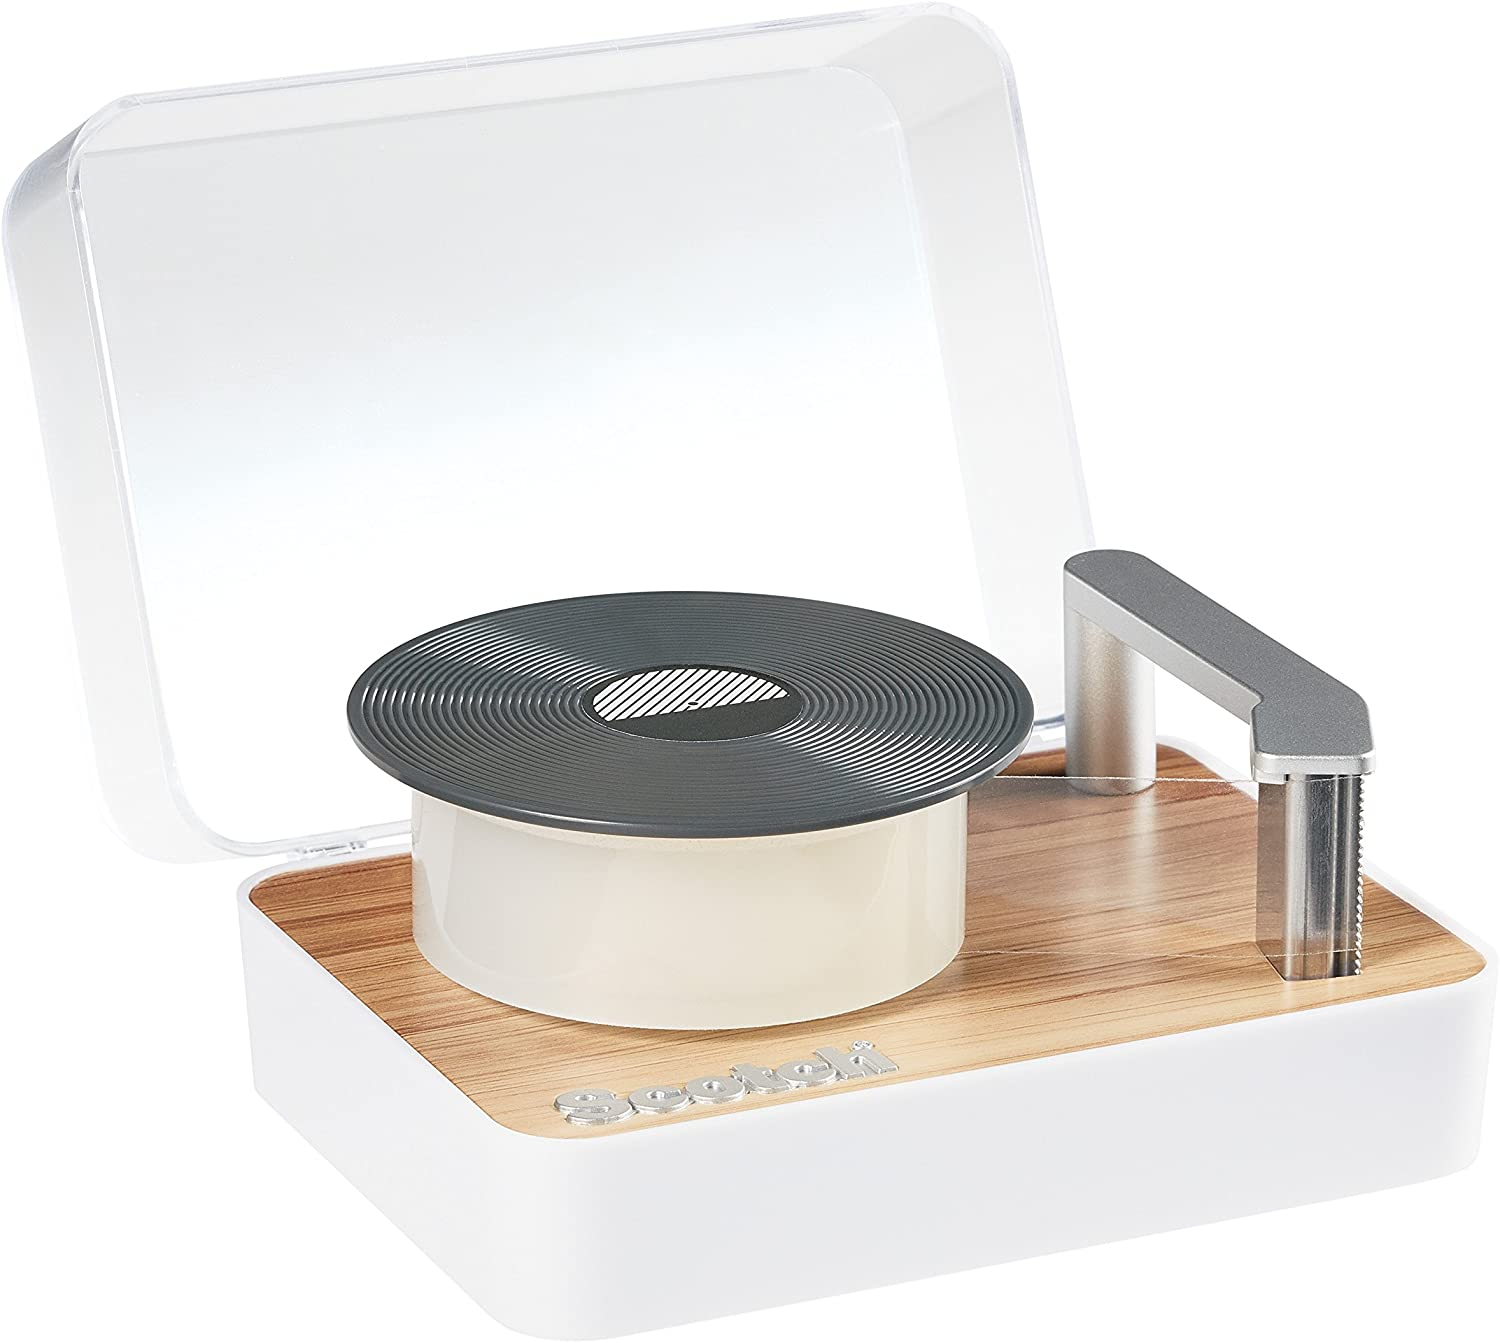 Scotch Magic Tape Dispenser, Record Player (C45-RECORD) : Office Products